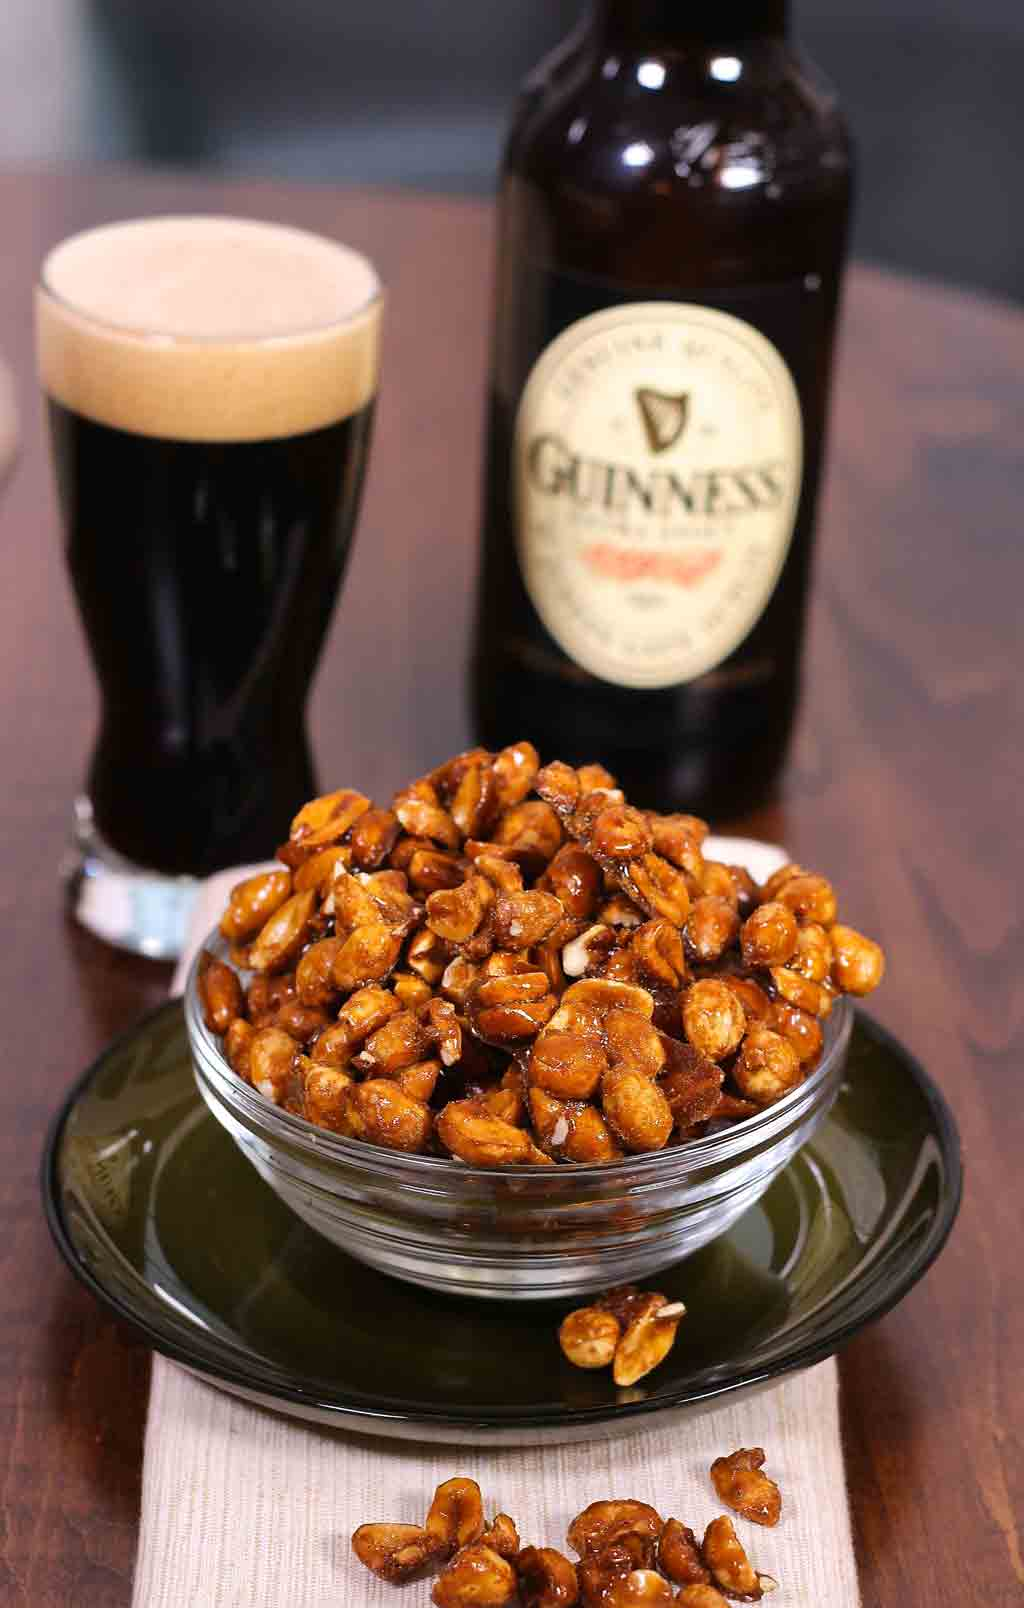 Promo image for Guinness Glazed Nuts recipe